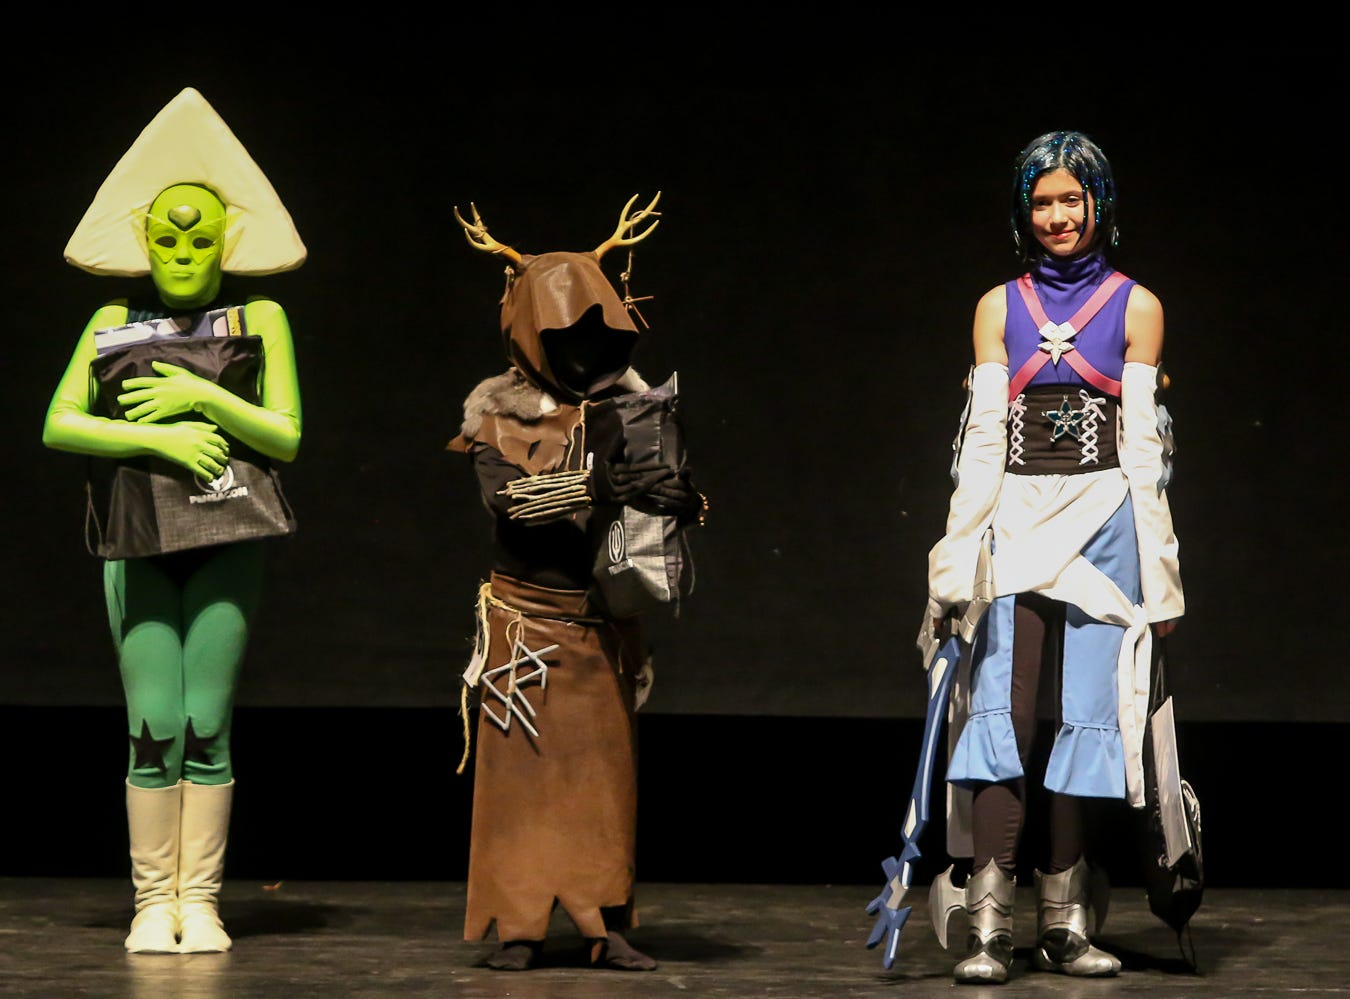 The top three winners in the Youth Division of the Pensacon cosplay contest presented by McGuire's Irish Pub at the Saenger Theatre on Saturday, February 23, 2019. No specific order was awarded.